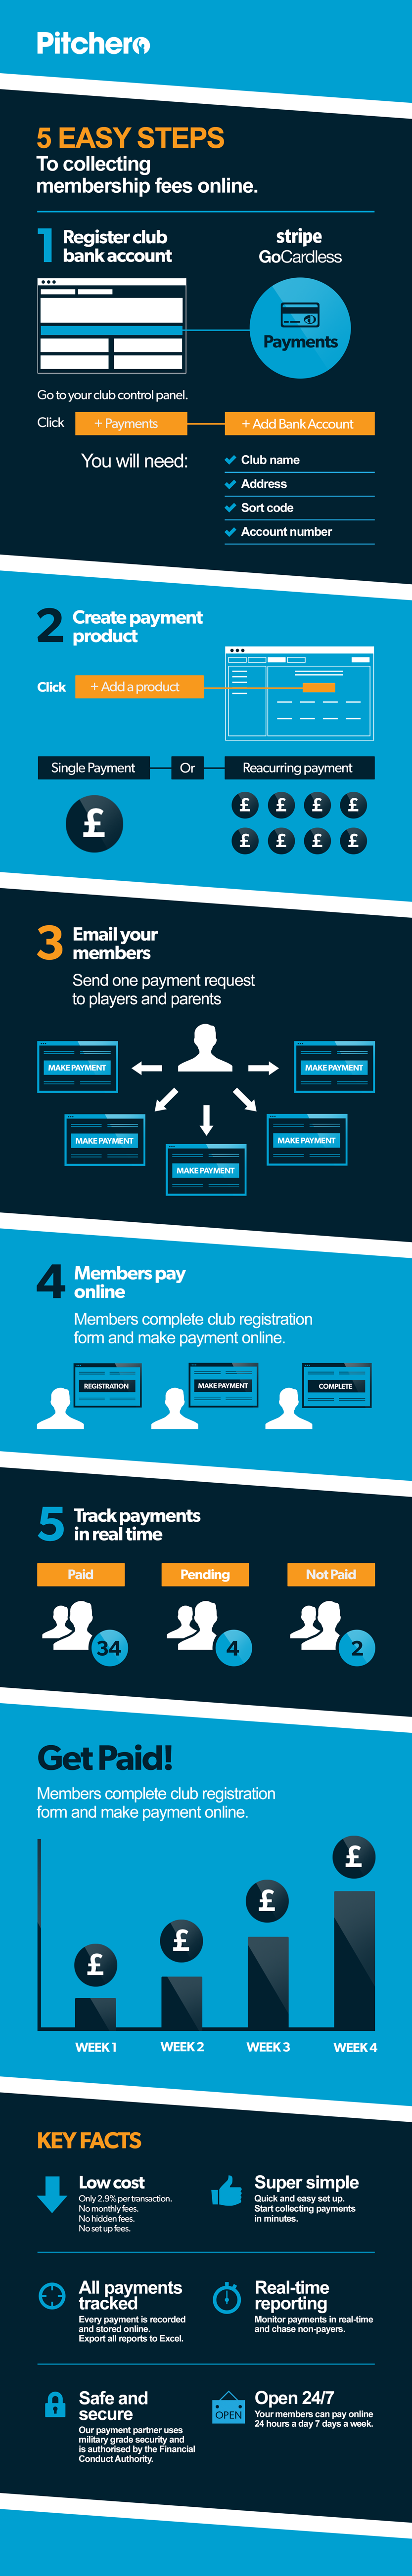 Payments-inforgraphic-1.png